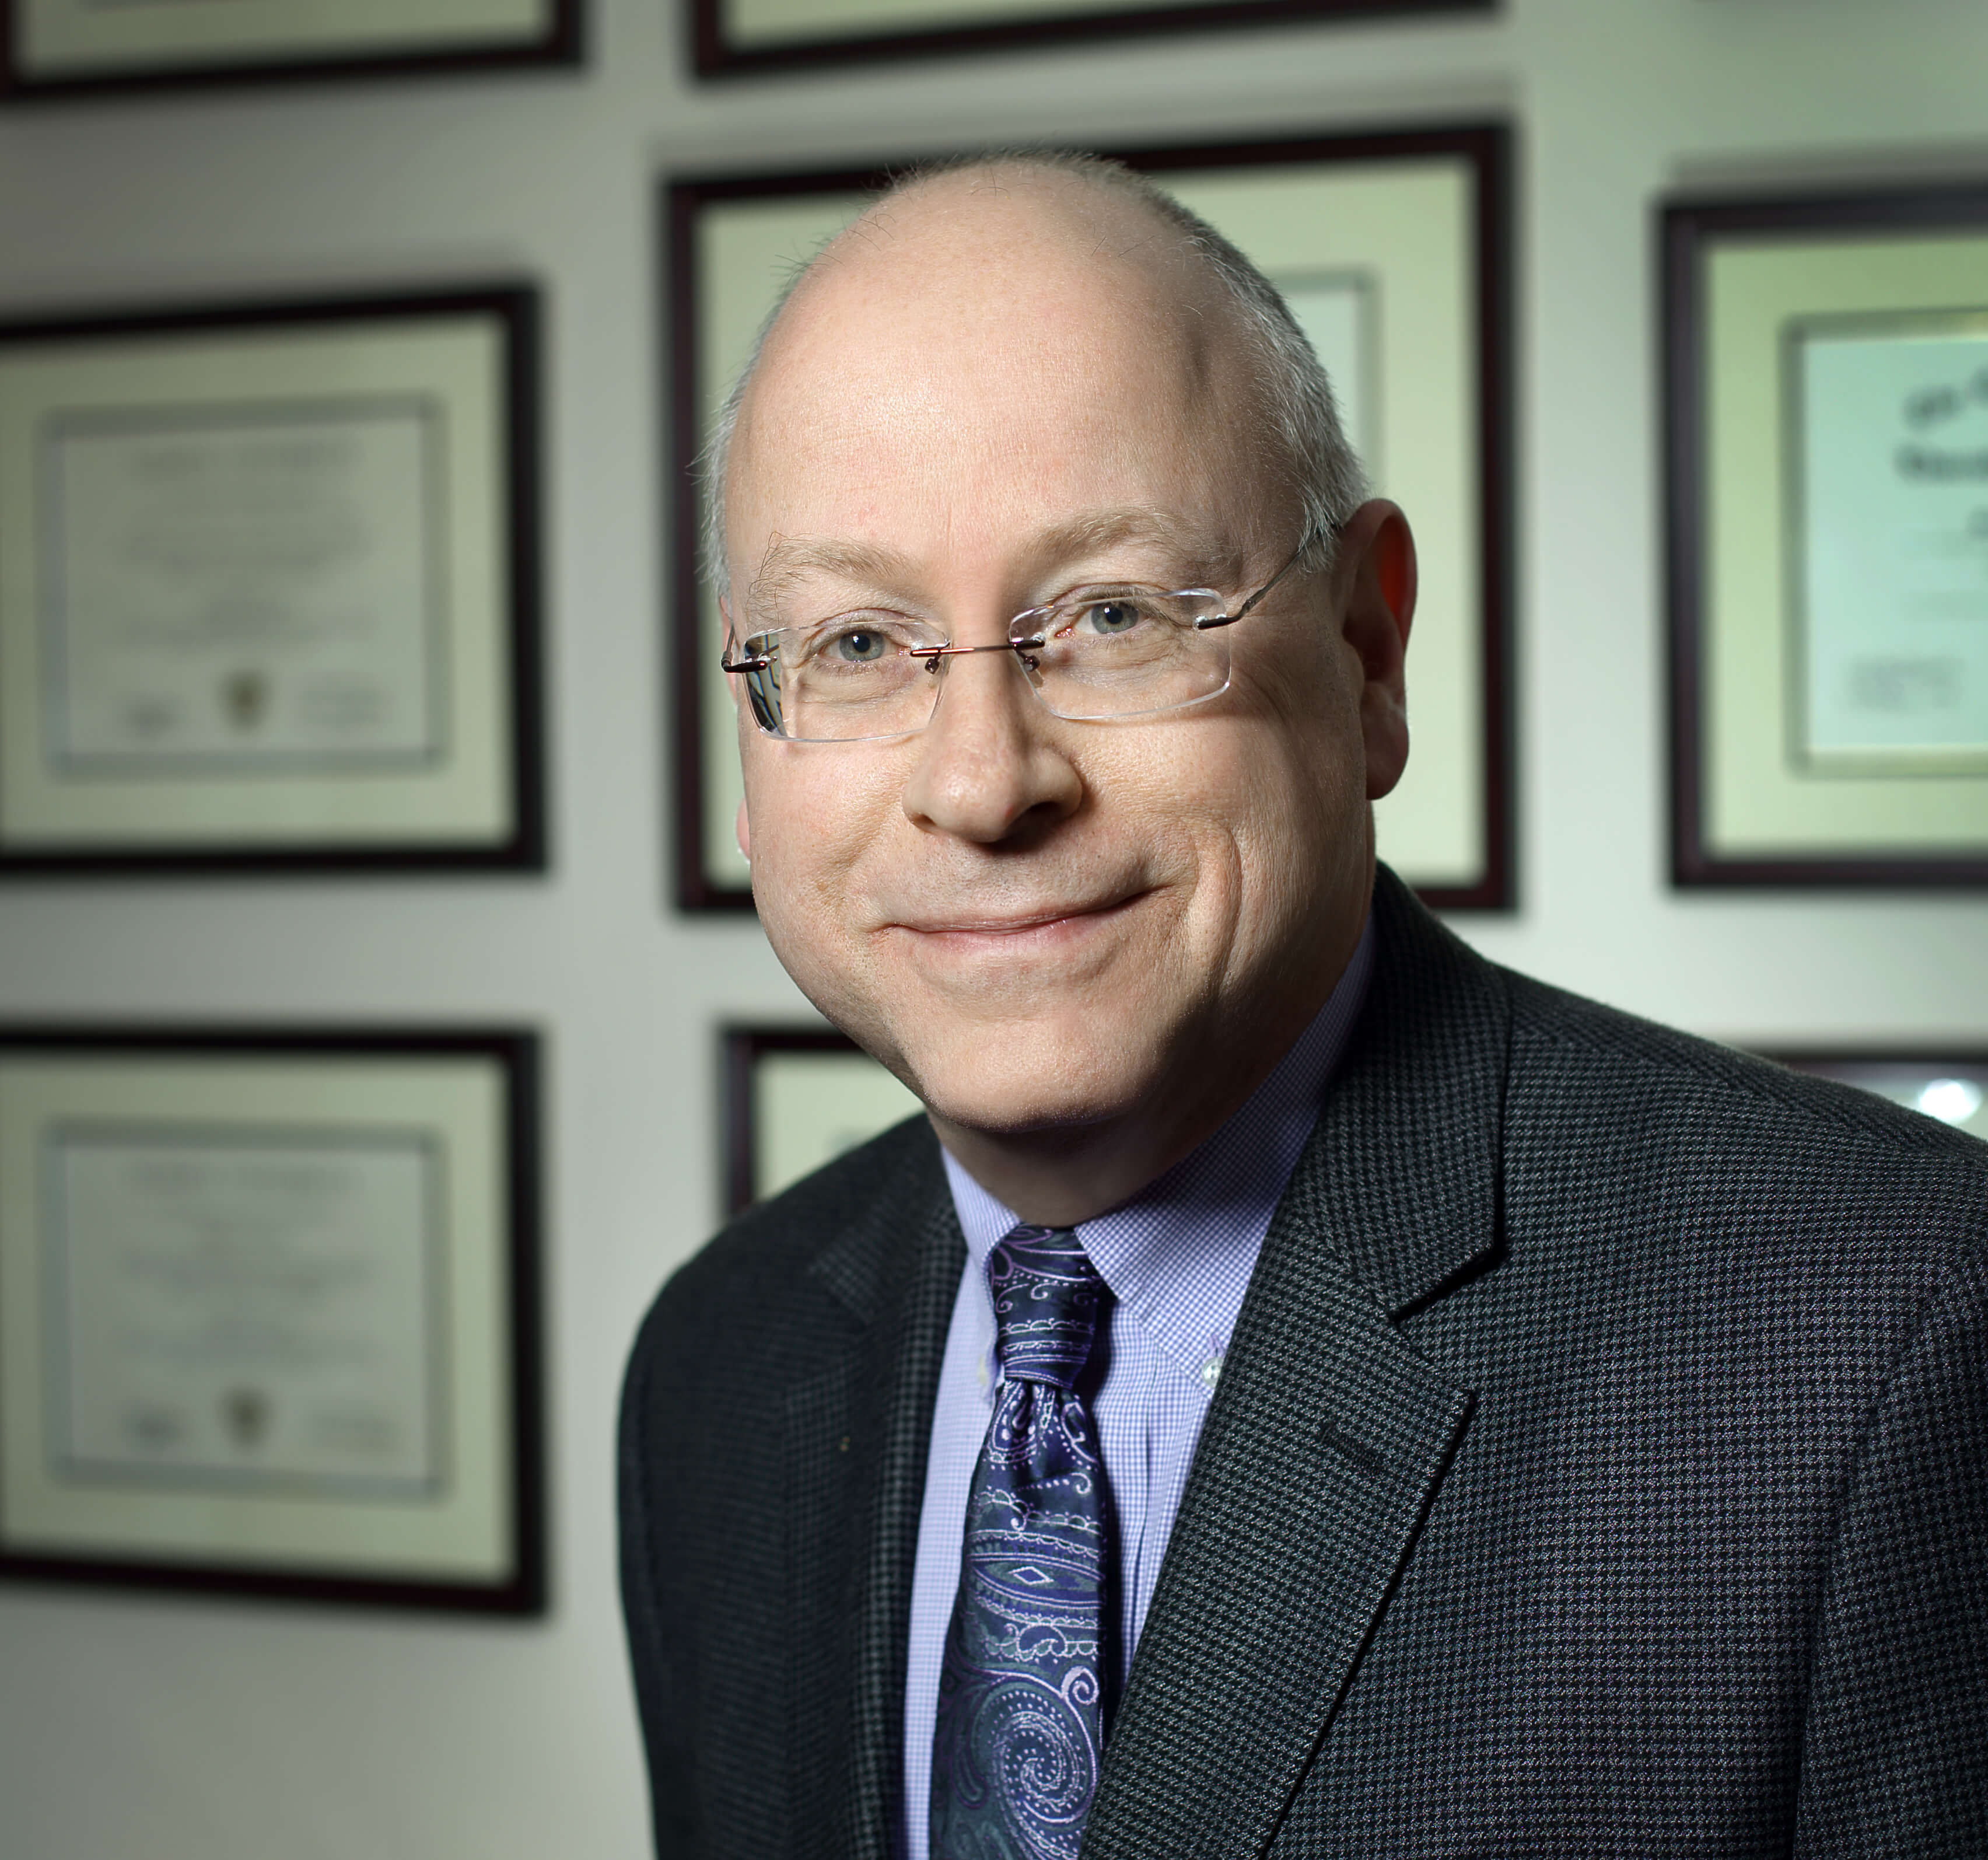 William Scharfman, medical oncologist